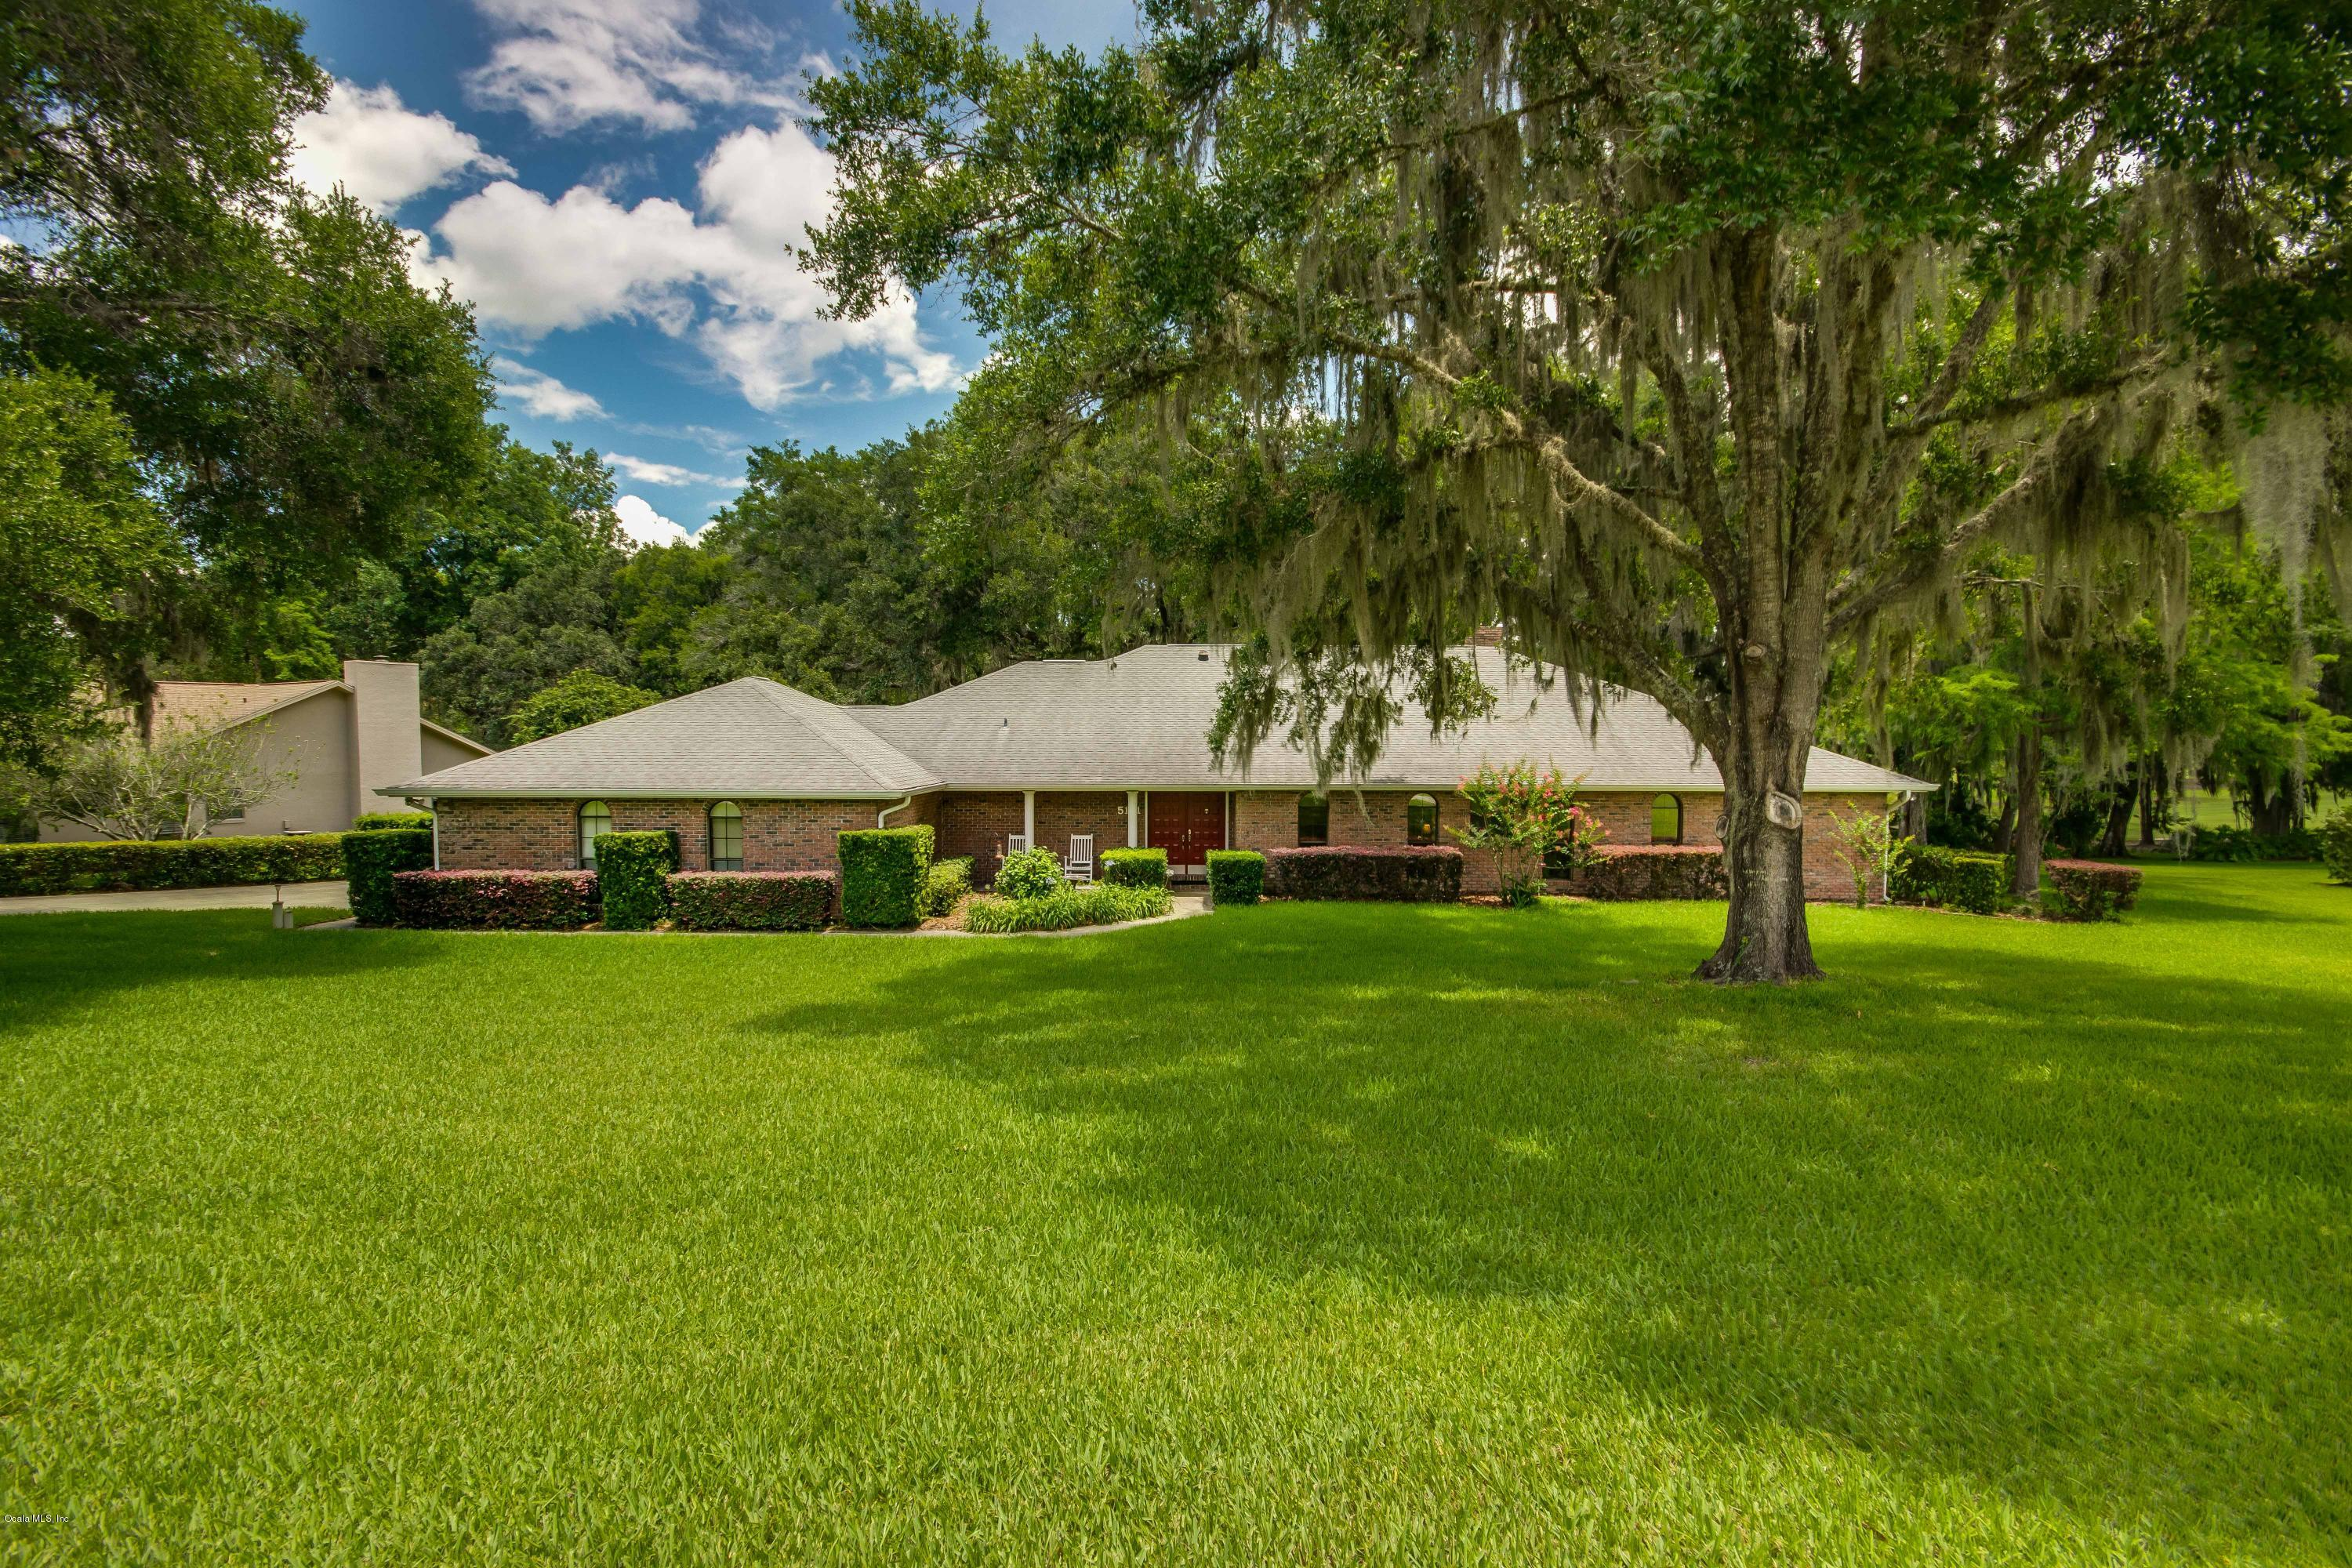 5101 NW 80TH AVENUE ROAD, OCALA, FL 34482